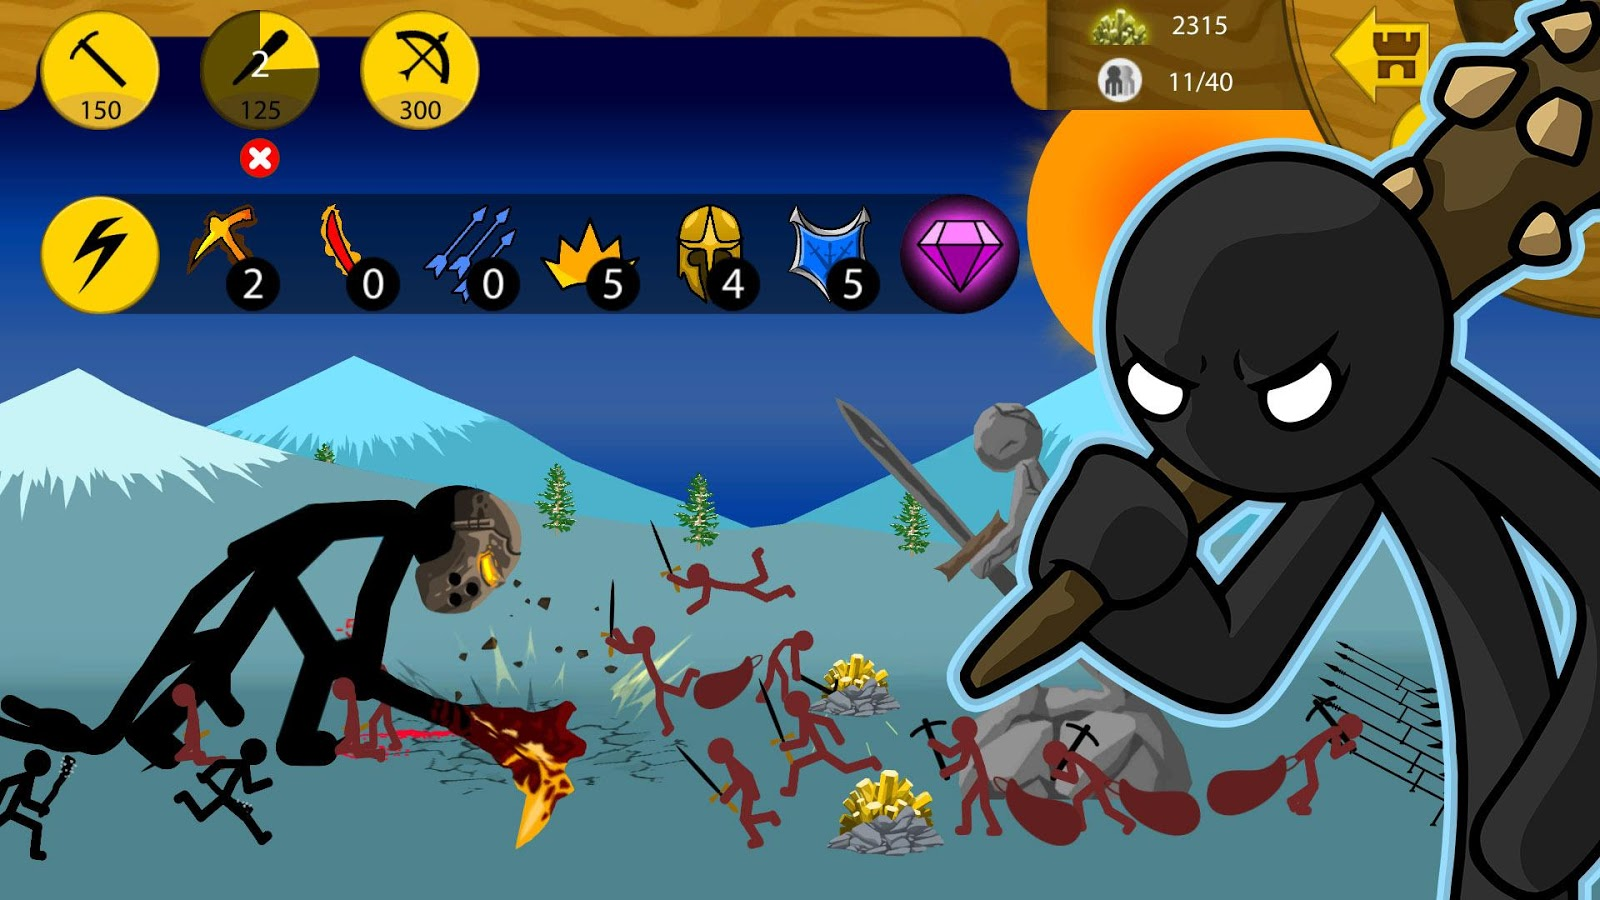 stick war character controls